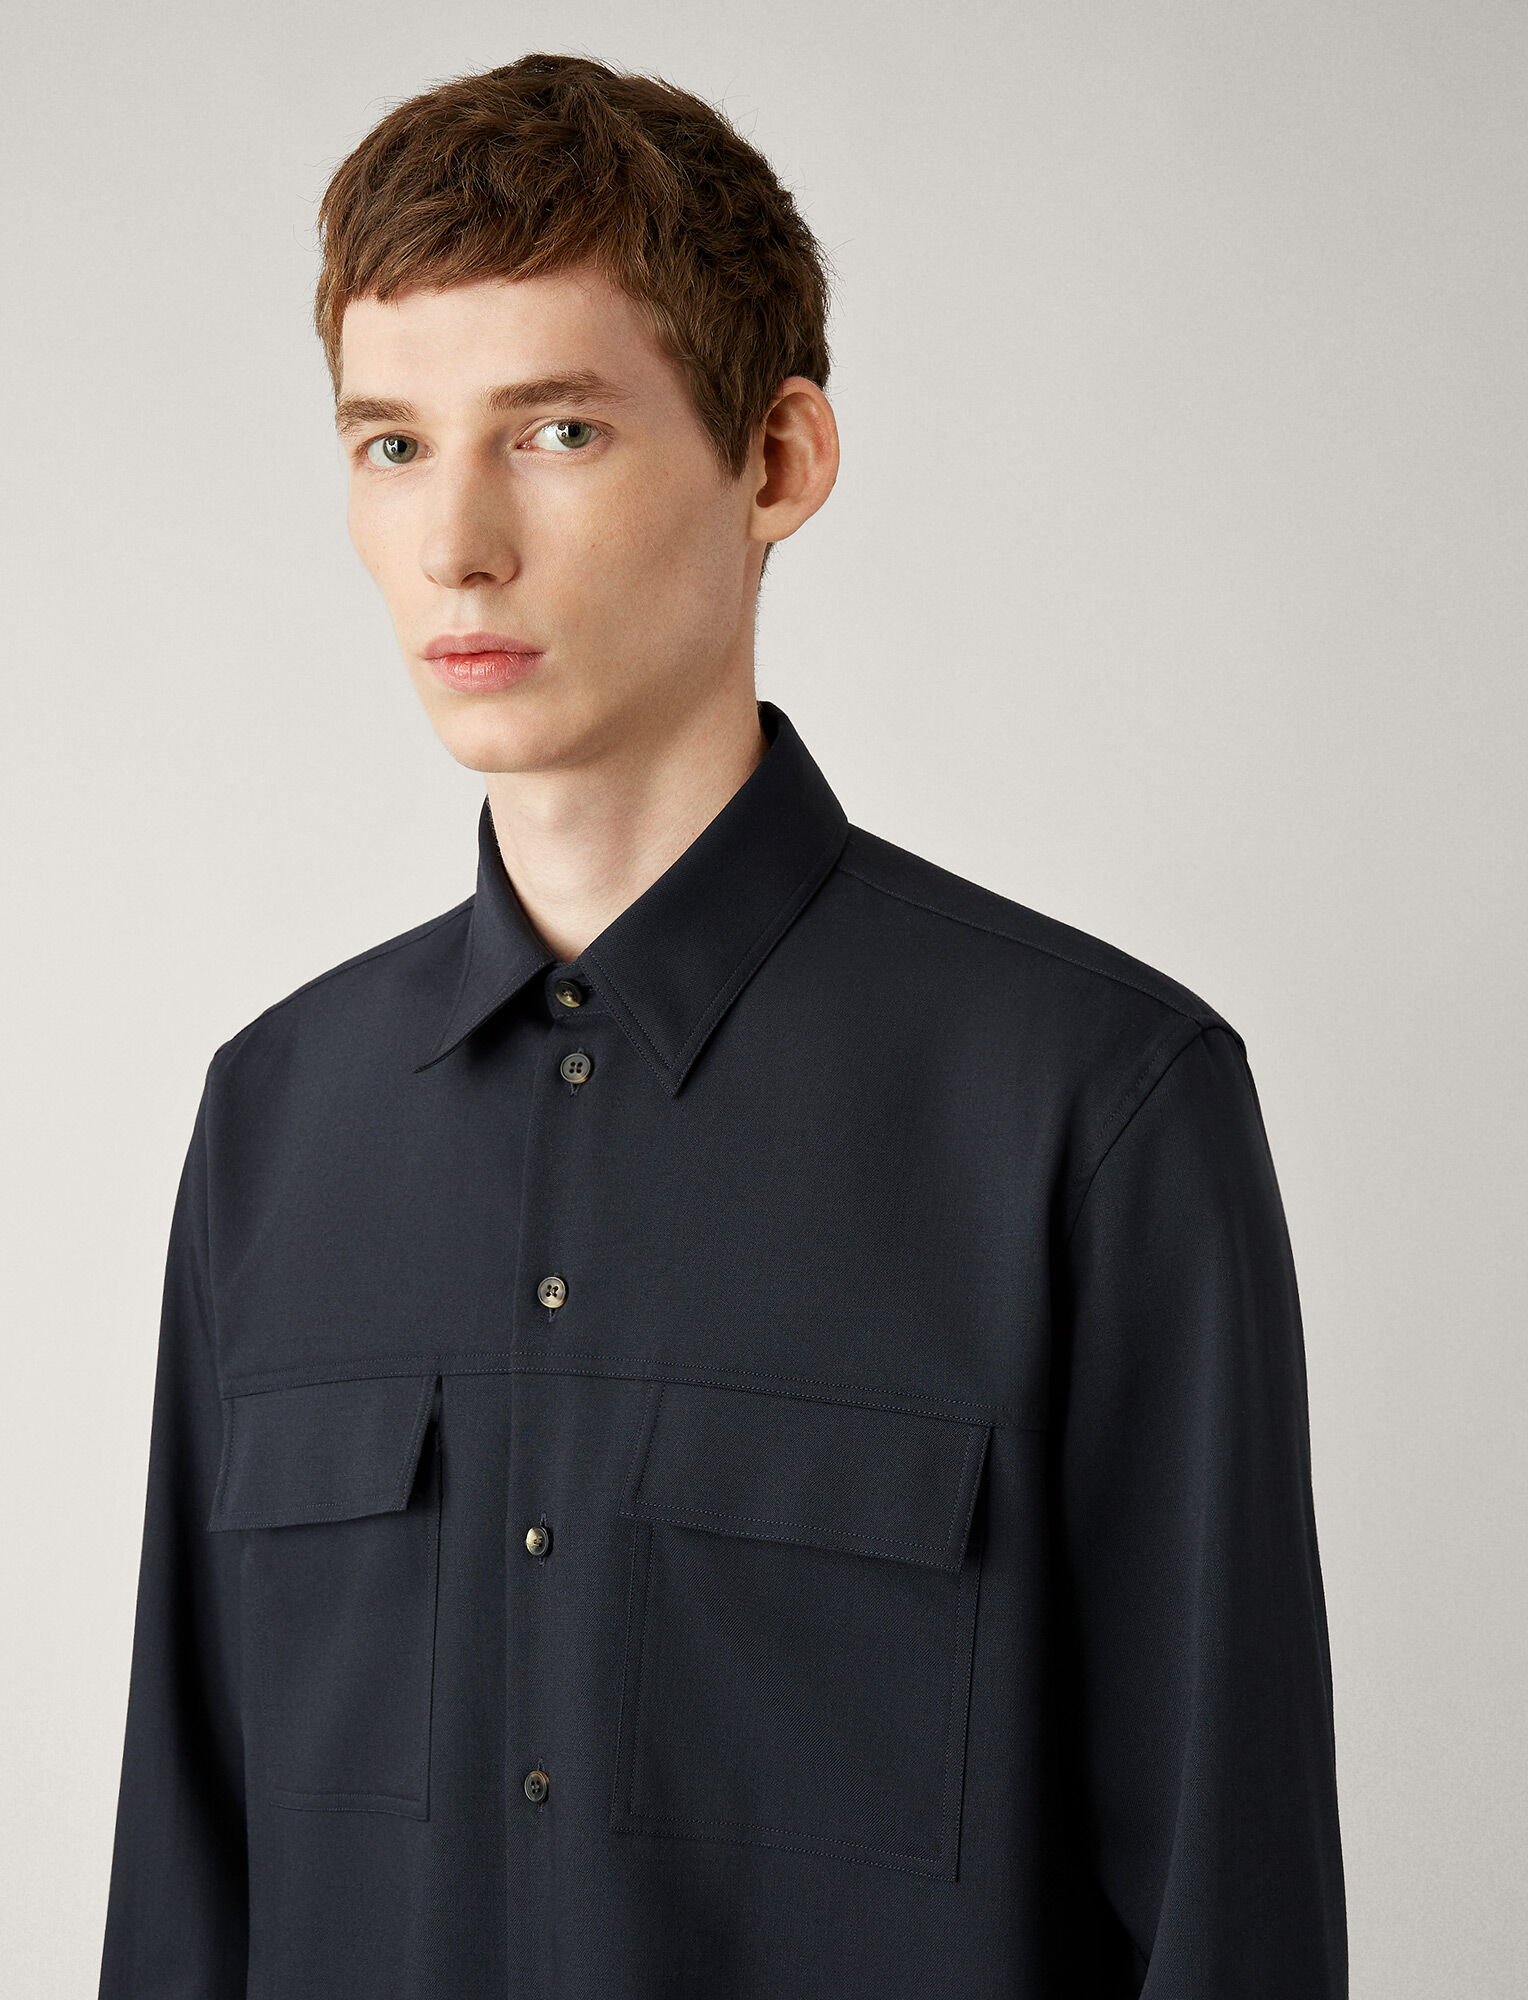 Joseph, Norman Fine Comfort Wool Shirt, in NAVY